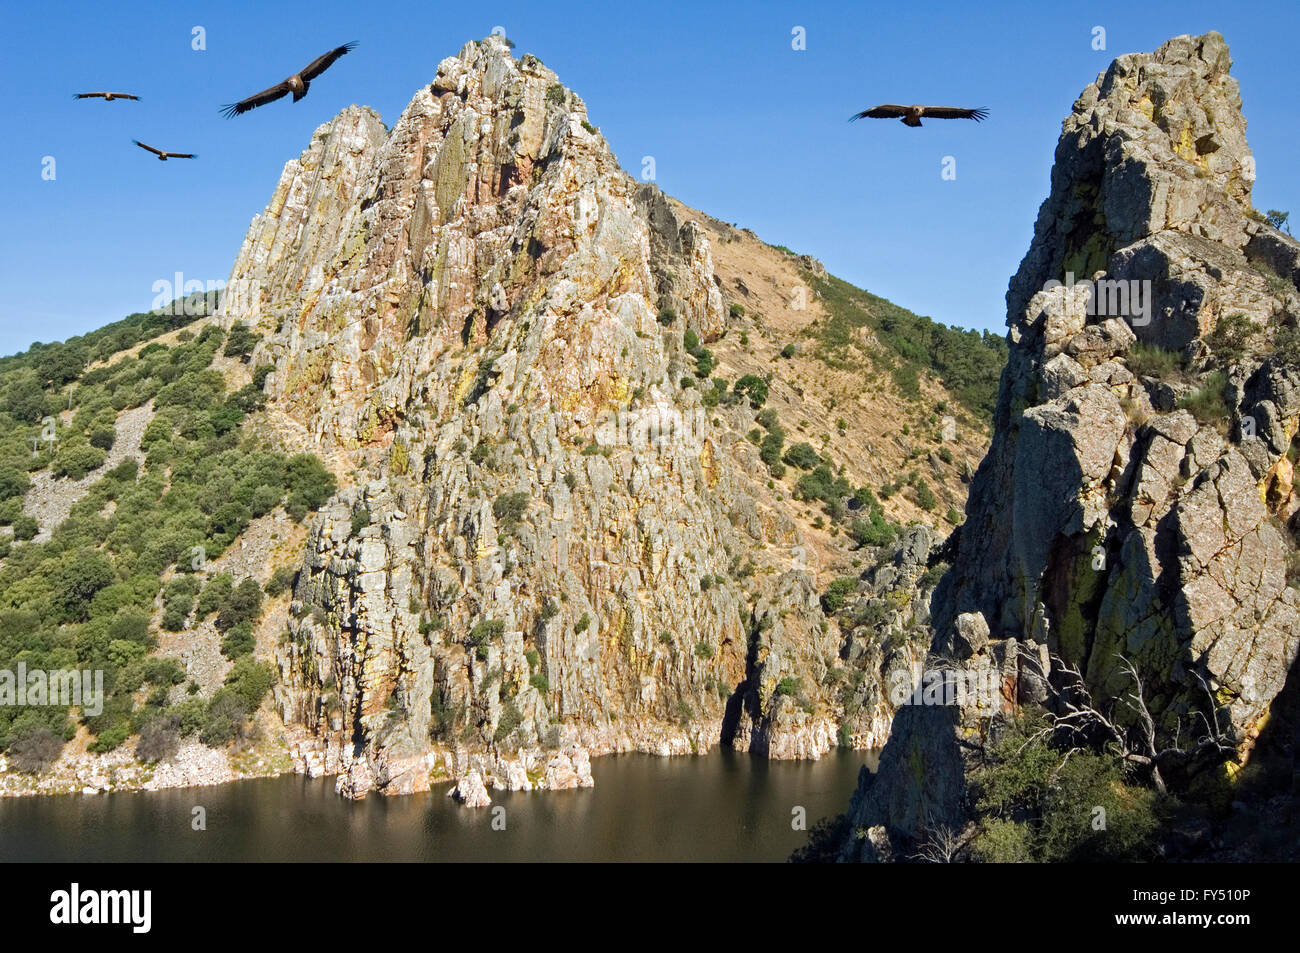 Griffon vultures (Gyps fulvus) flying in front of Peñafalcon, rock housing a colony of vultures at Monfragüe, - Stock Image